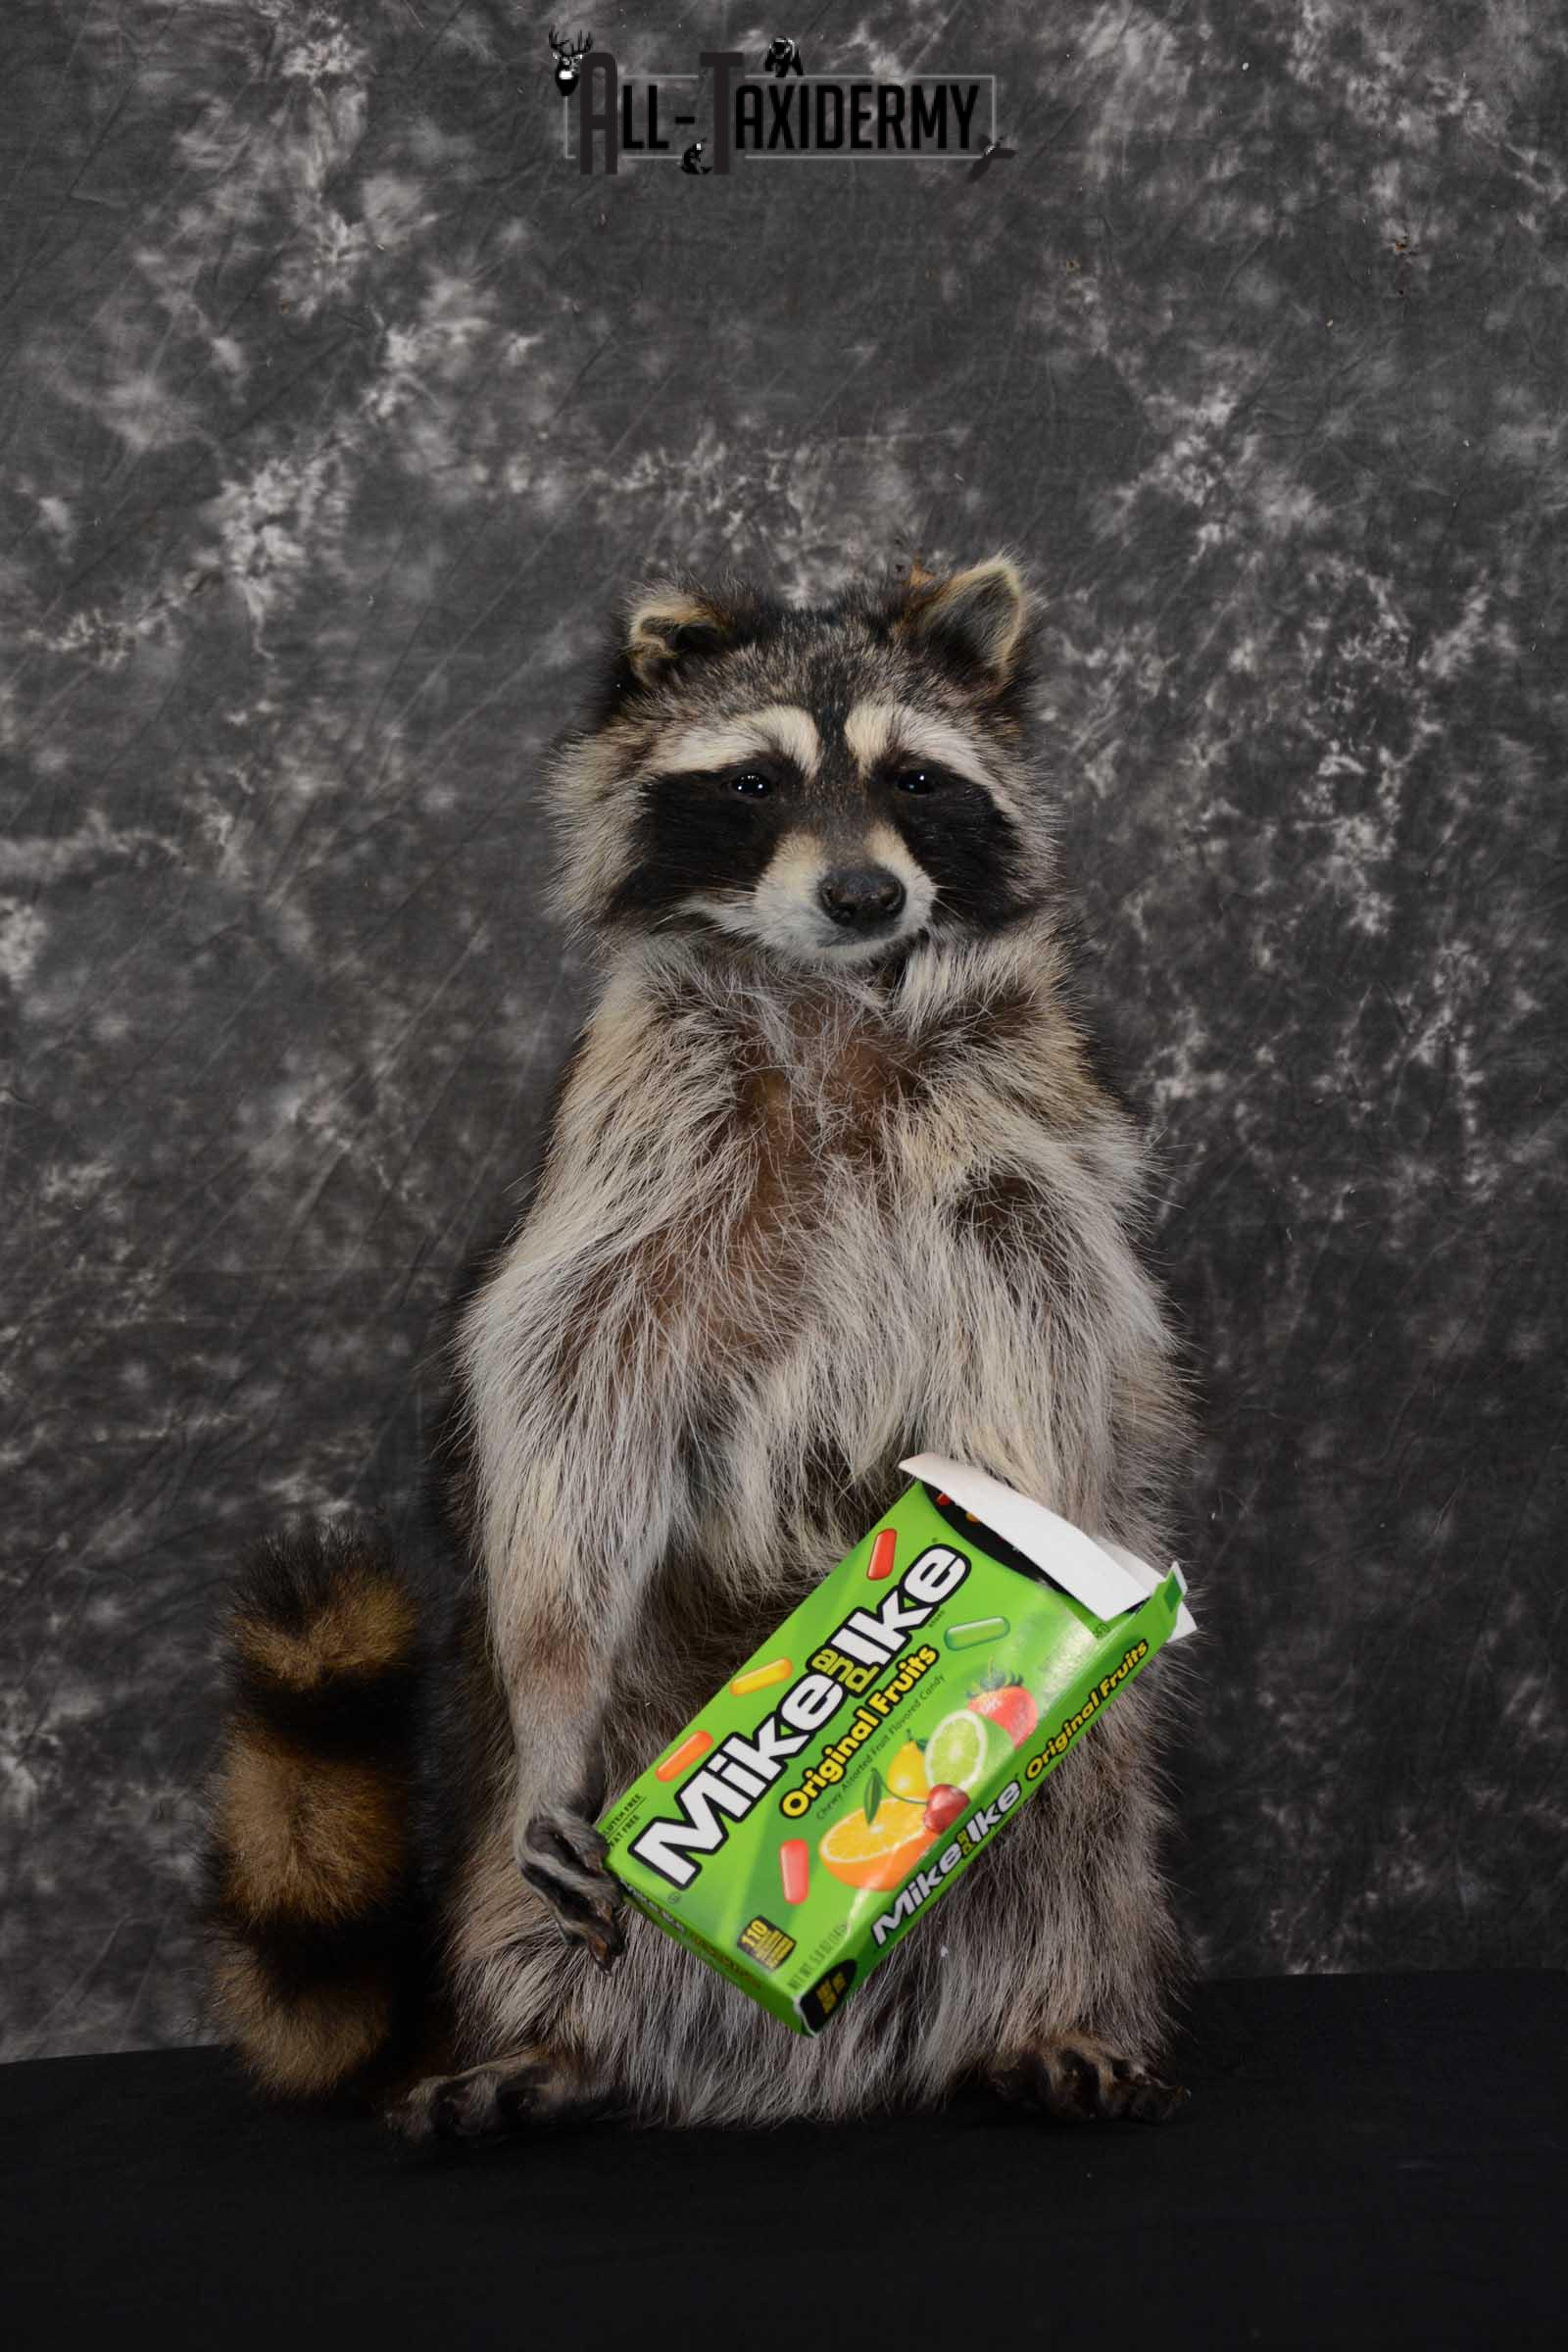 Raccoon with Mike and Ike's Candy full body taxidermy mount for sale SKU 1628